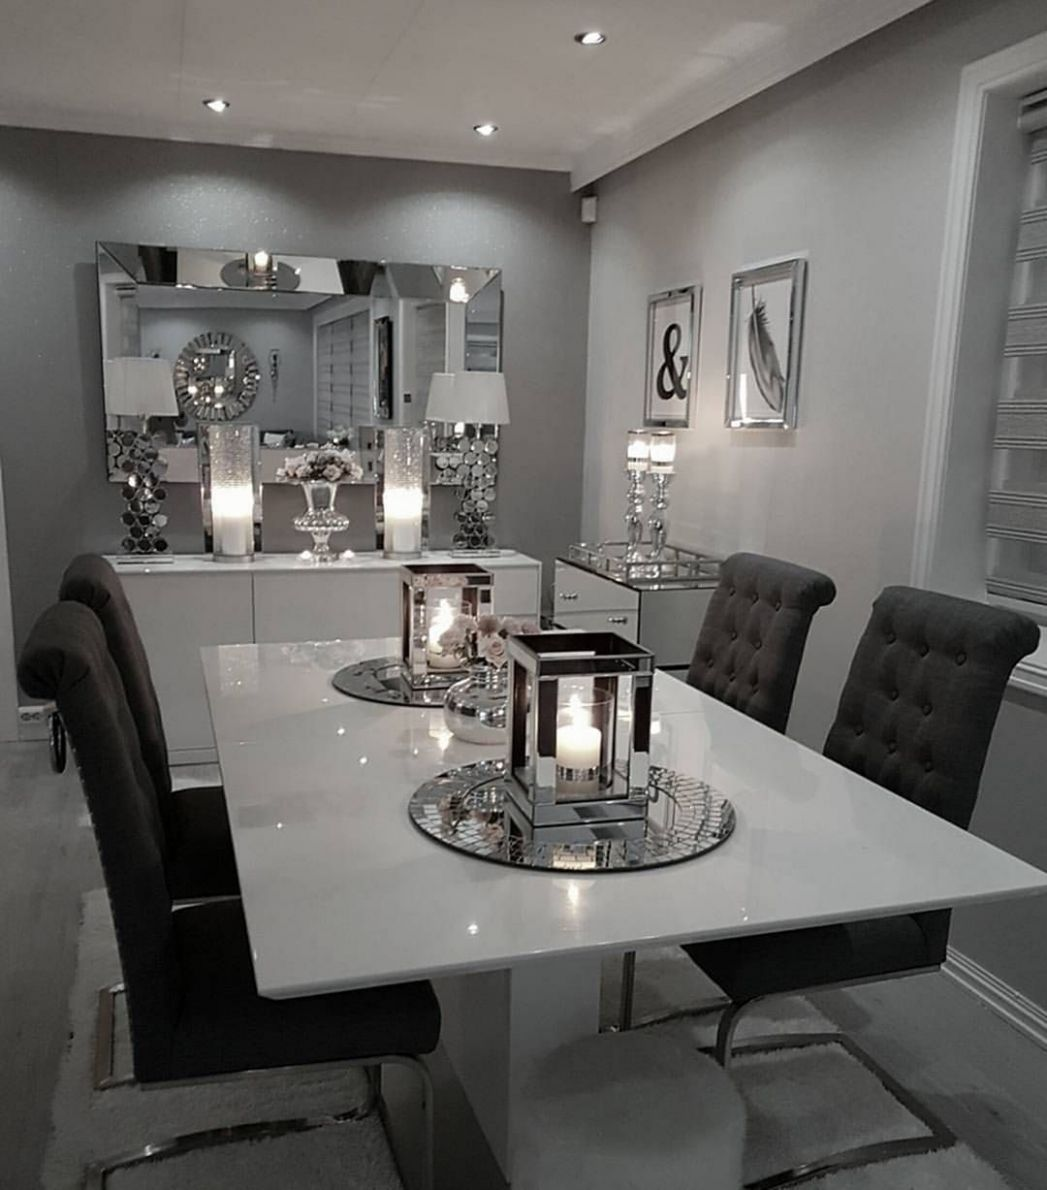 Modern Dining Room Ideas Decor 11 – DECOOR - dining room ideas modern